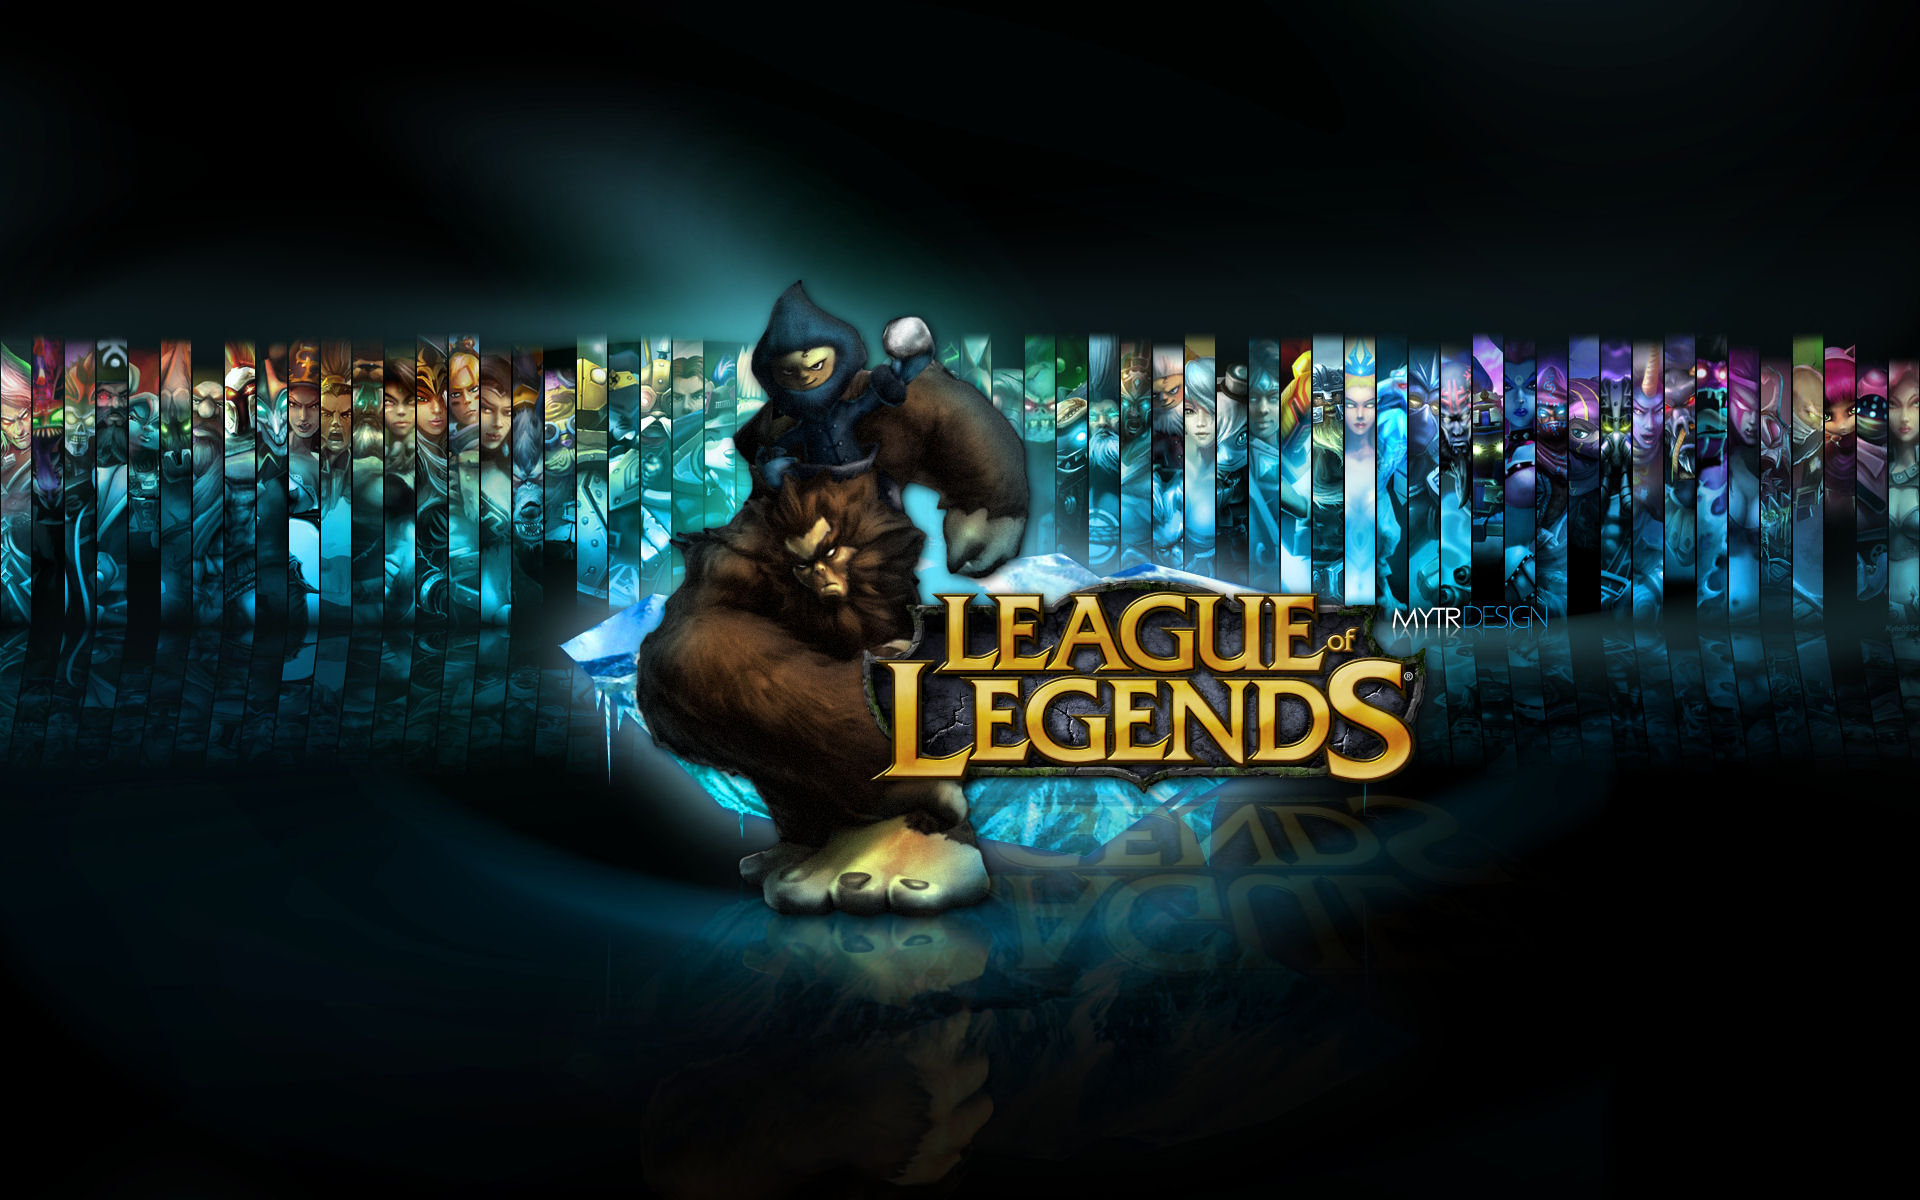 leayge of legends